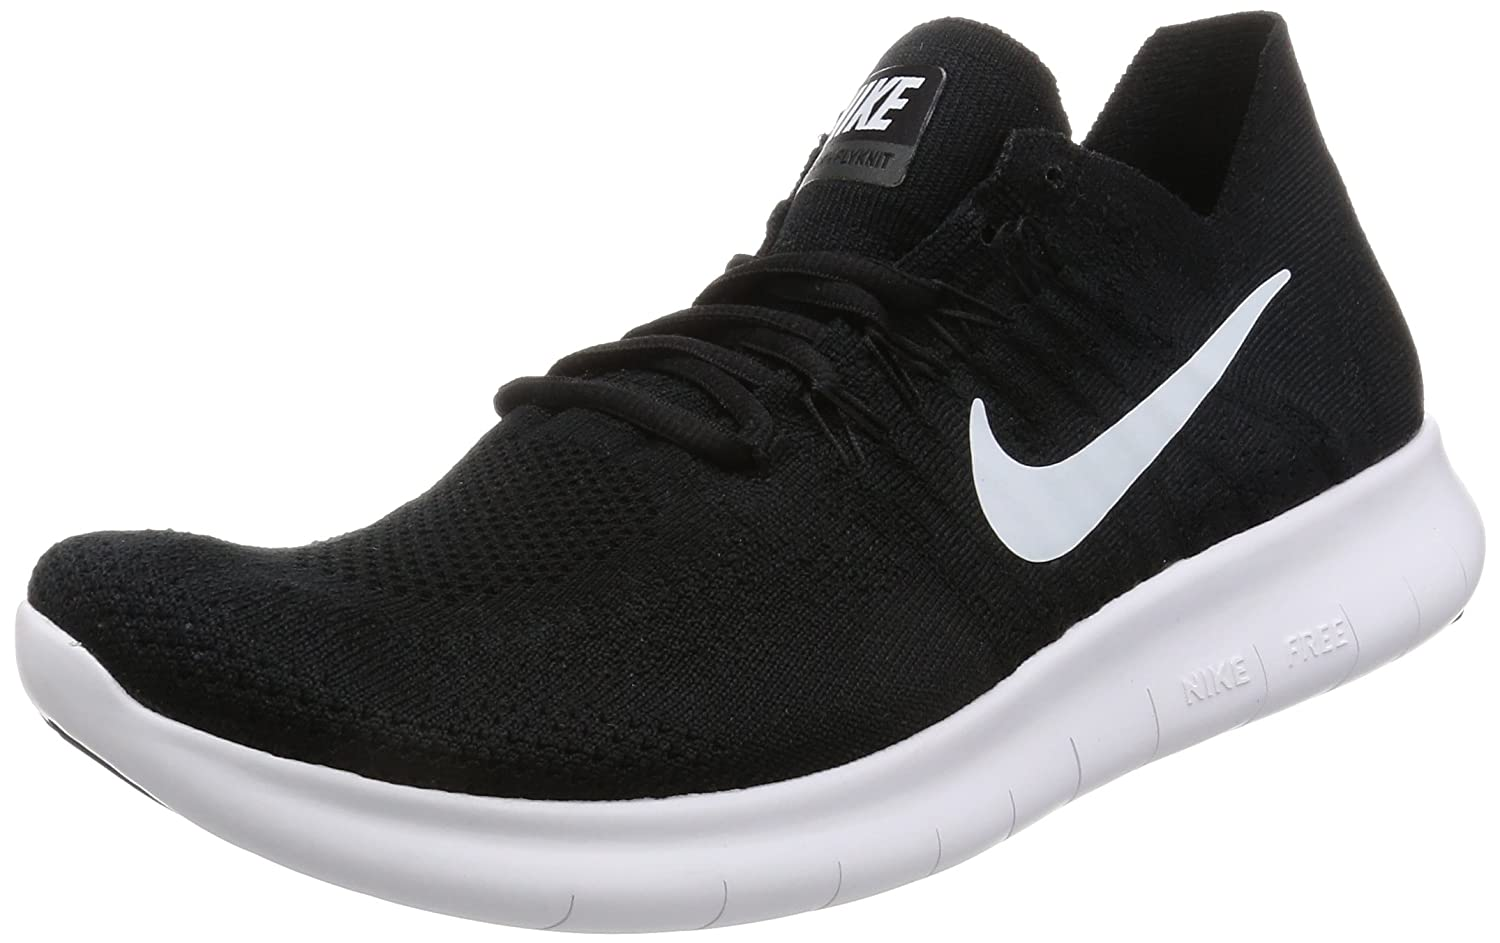 the best attitude 73b94 ffa0f Nike Free RN Flyknit 2017, Chaussures de Running Homme: Amazon.fr:  Chaussures et Sacs